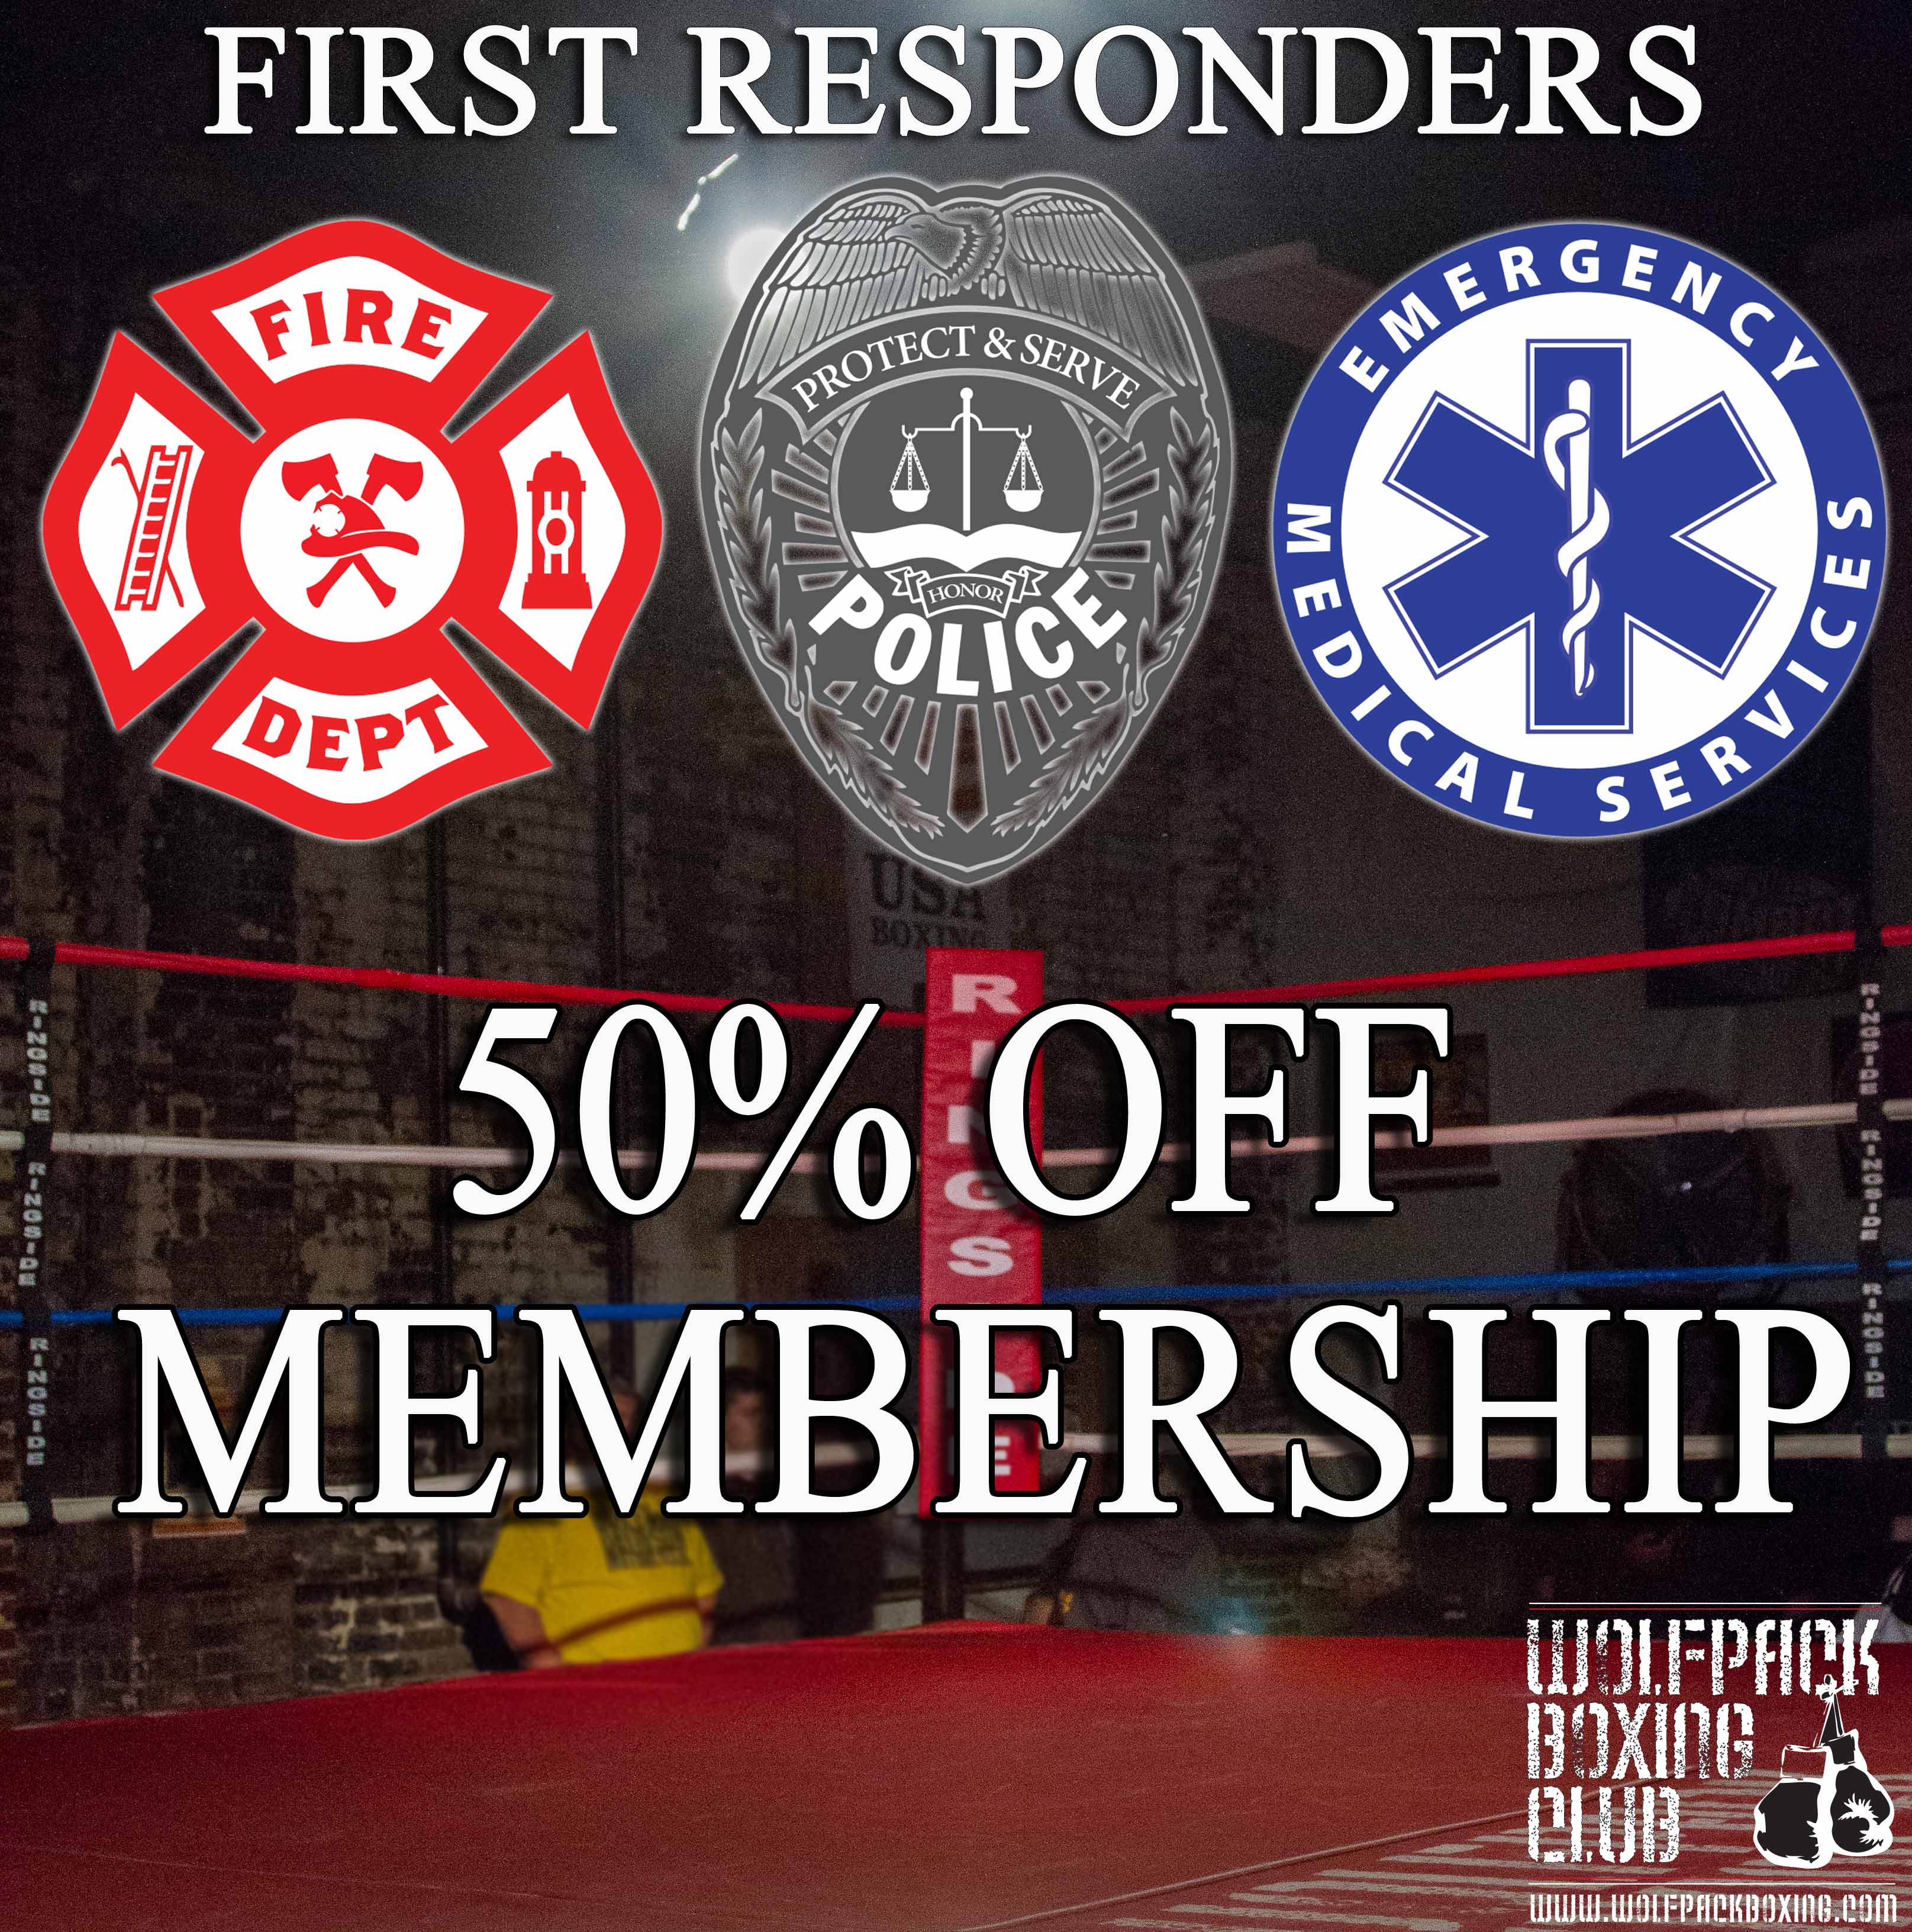 First Responders receive a discount at Wolfpack Boxing Club